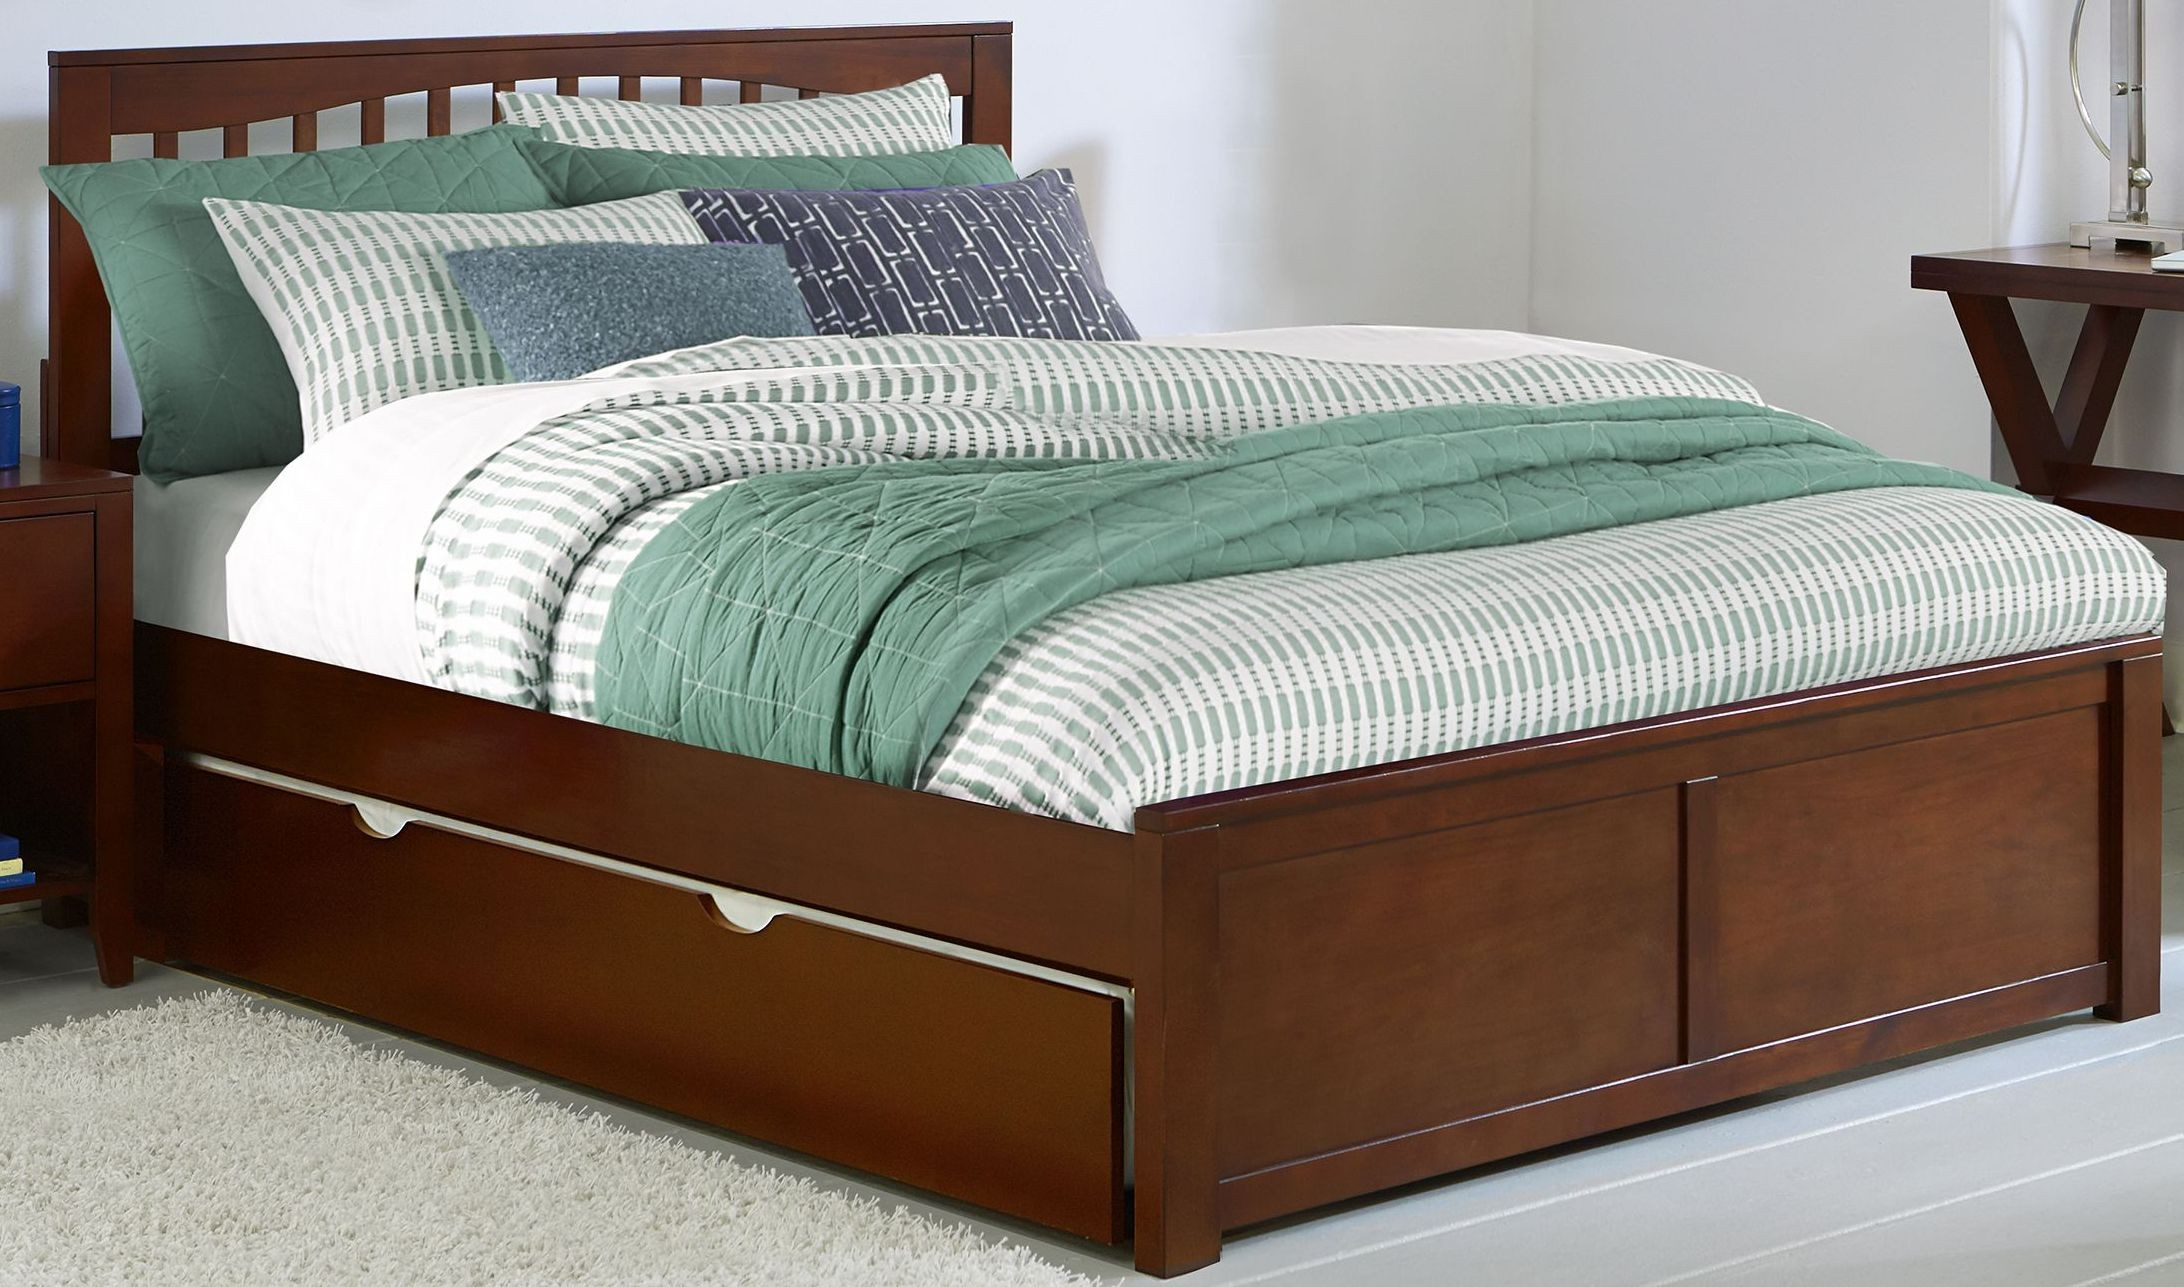 Trundle Bed Queen 28 Images Queen Trundle Bed White